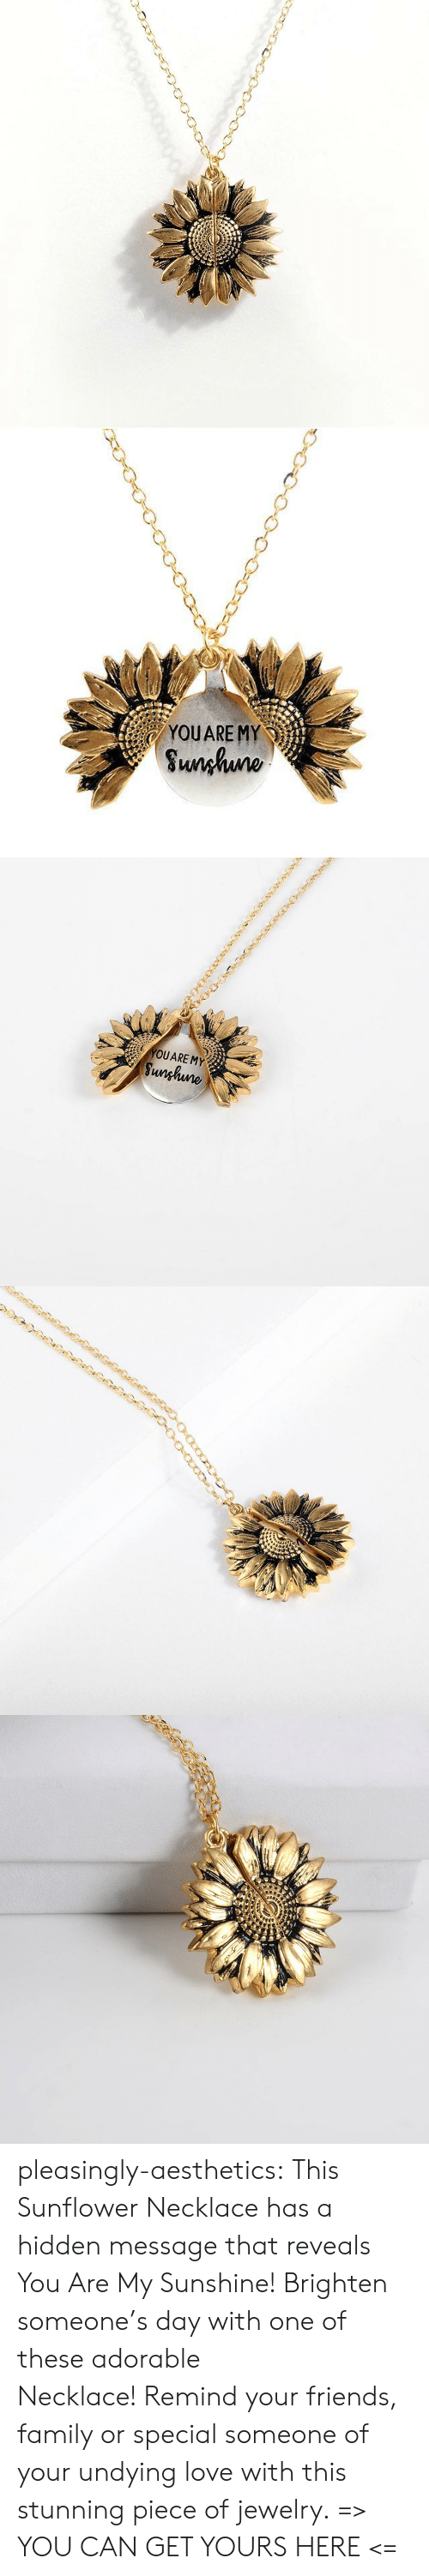 Jewelry: YOUARE MY  Sunhuno   YOUARE MY  Sunghune pleasingly-aesthetics: This Sunflower Necklace has a hidden message that reveals You Are My Sunshine! Brighten someone's day with one of these adorable Necklace! Remind your friends, family or special someone of your undying love with this stunning piece of jewelry. => YOU CAN GET YOURS HERE <=